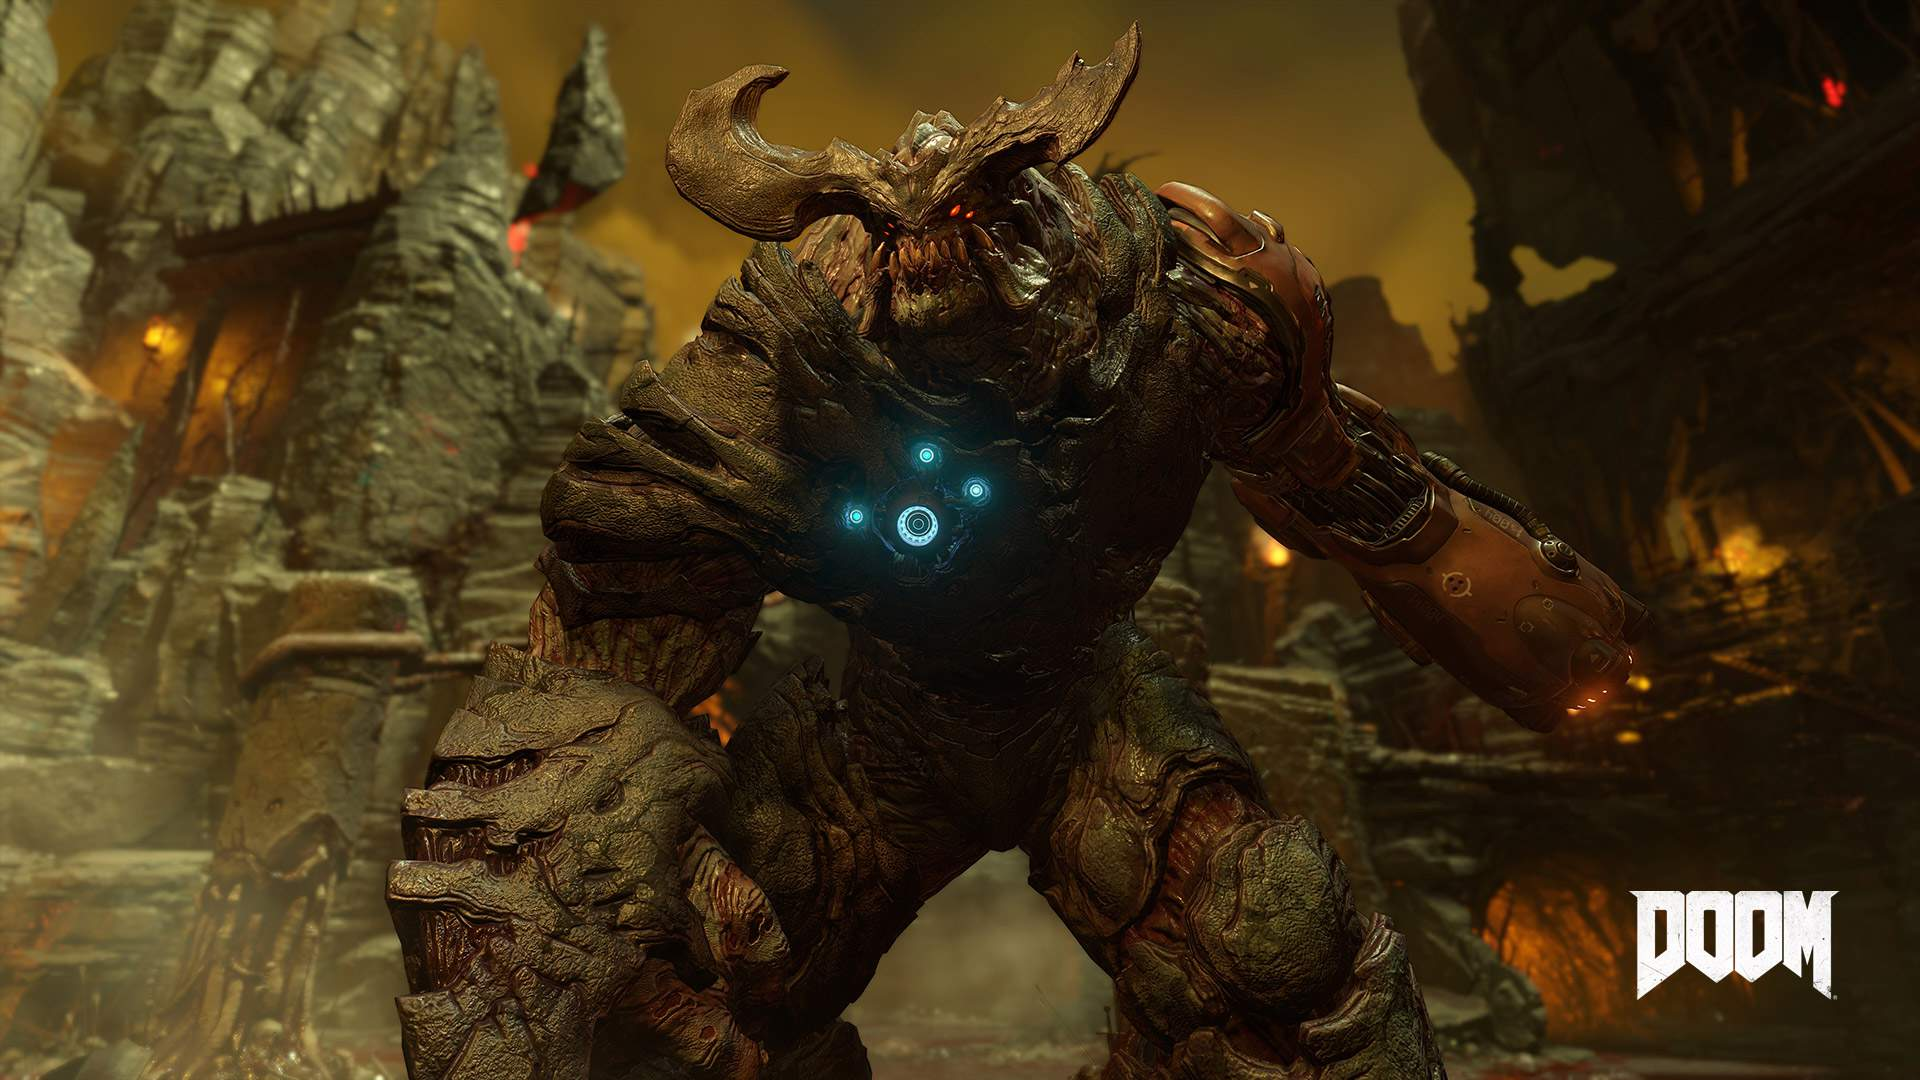 Not even Bethesda thought the new DOOM's campaign would succeed